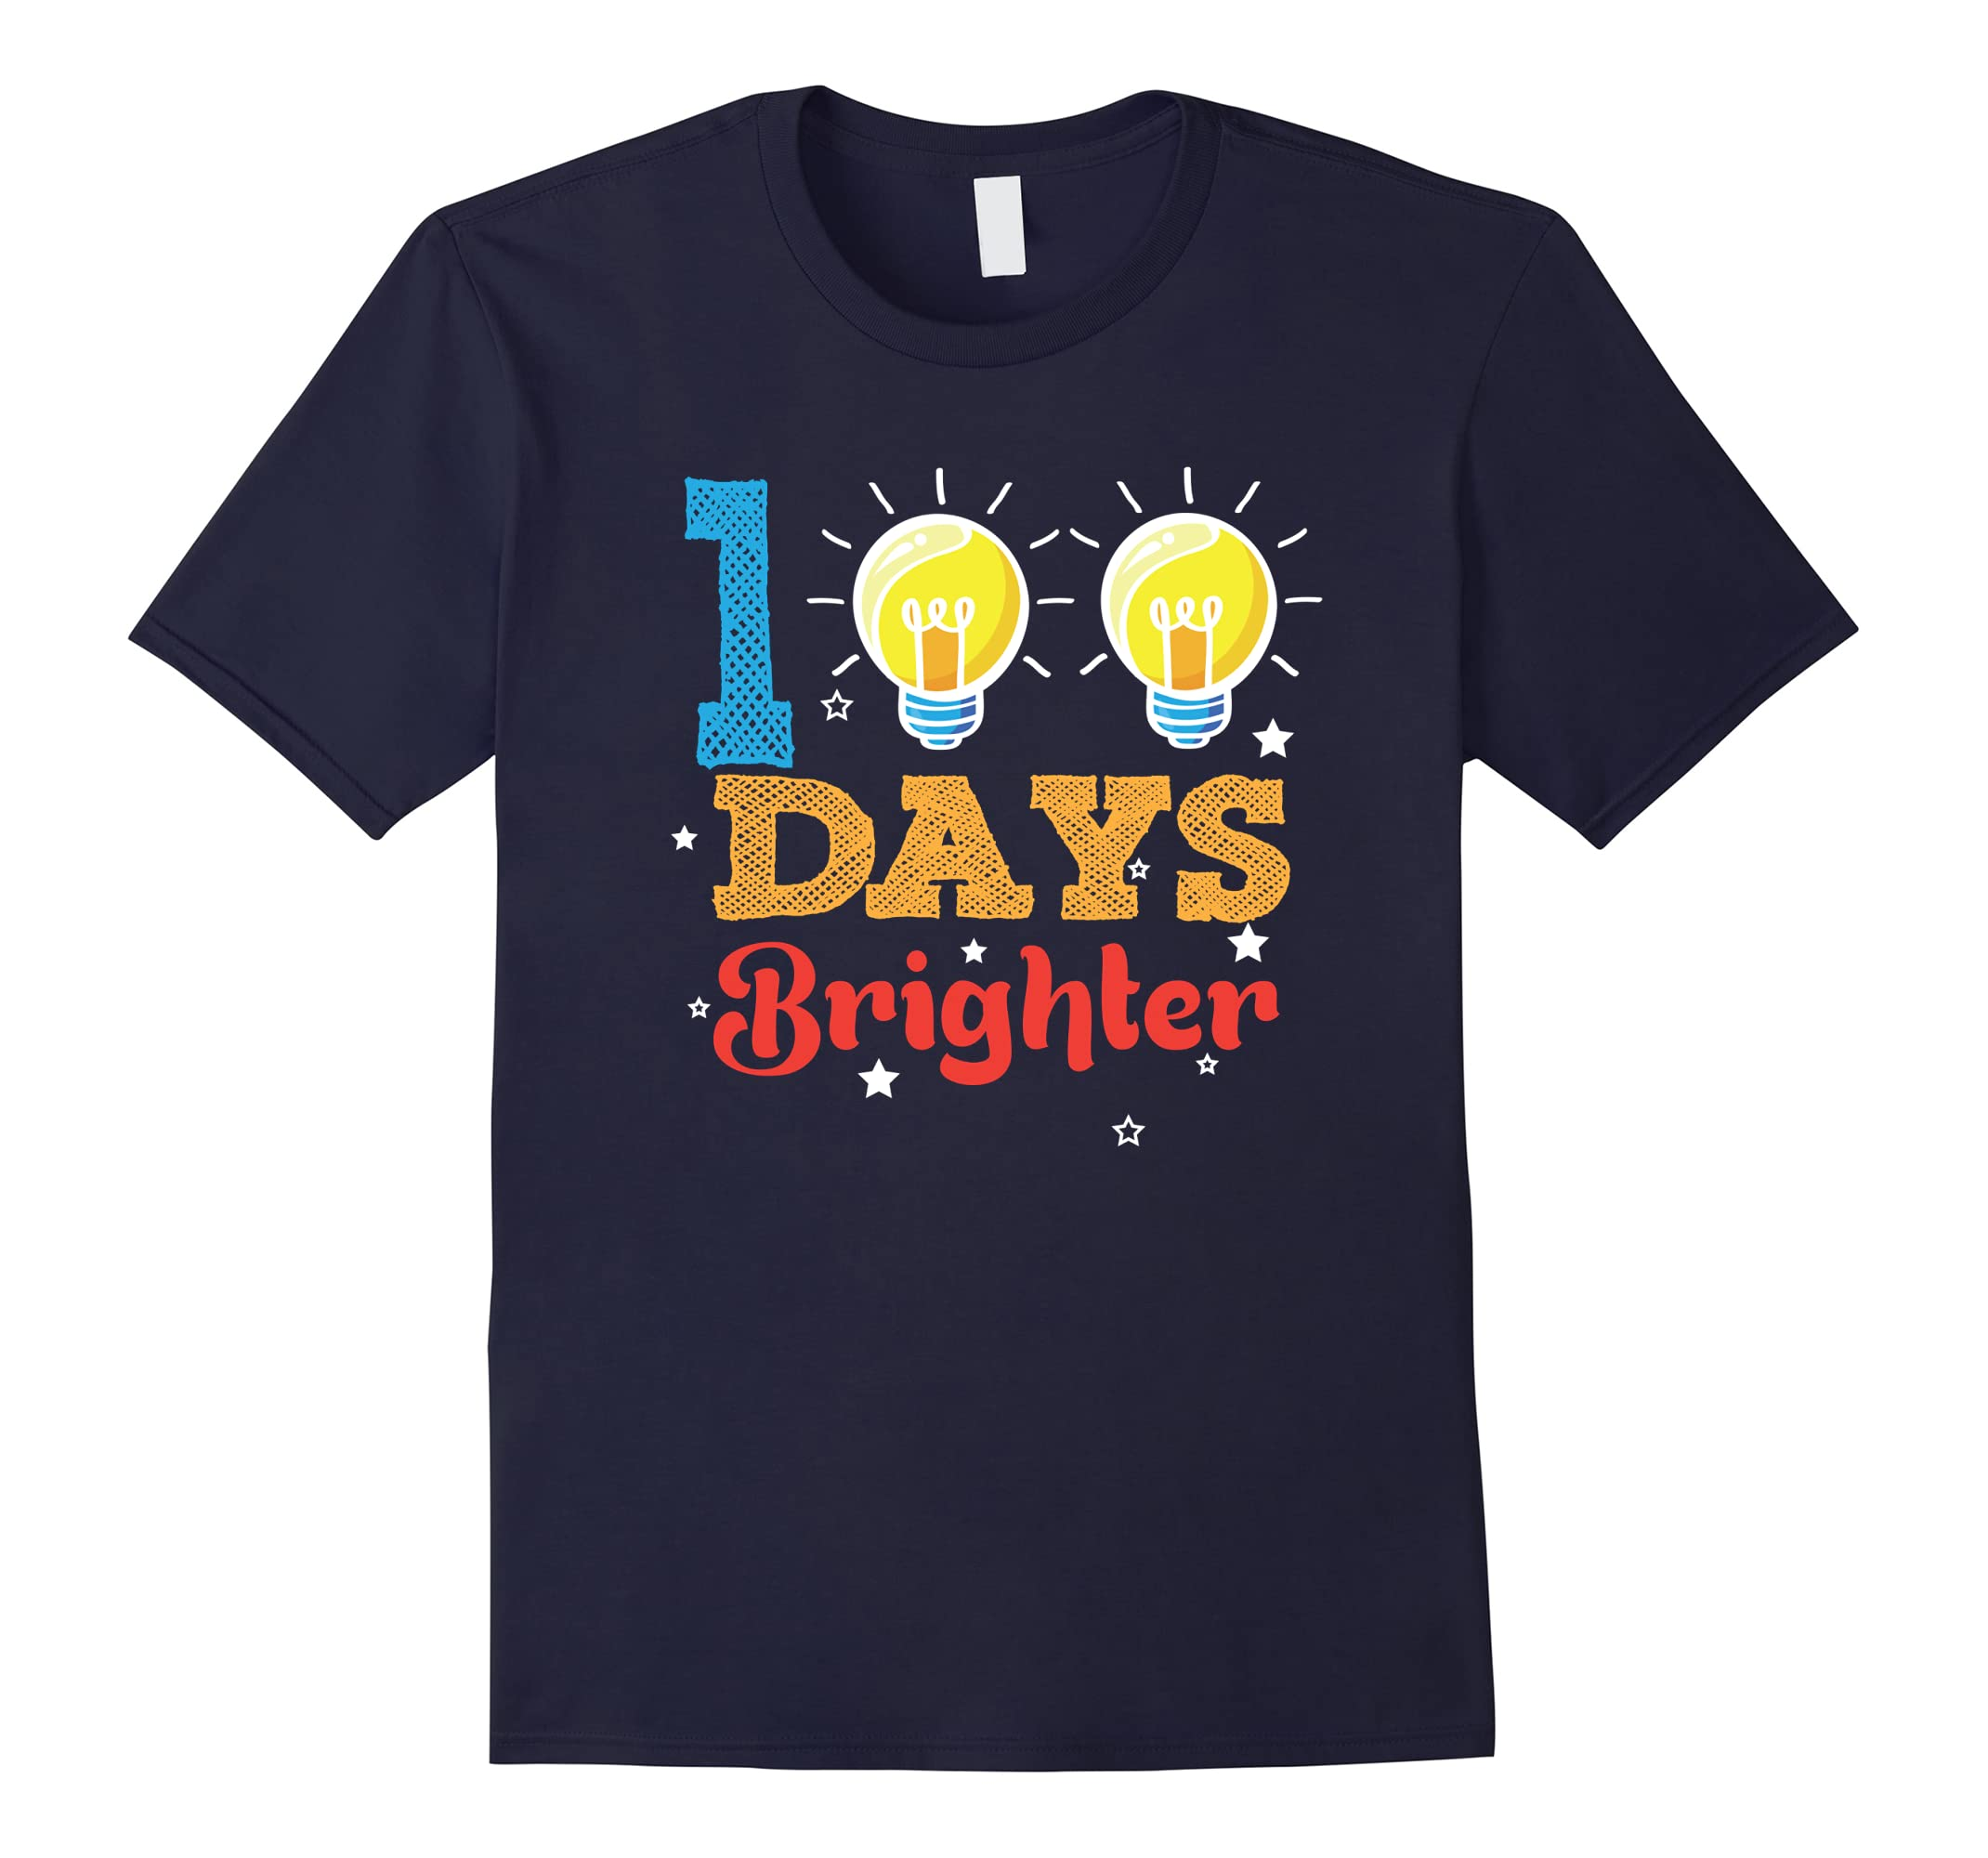 100 Days Brighter 100th Day Teachers and Kids T-Shirt-ah my shirt one gift